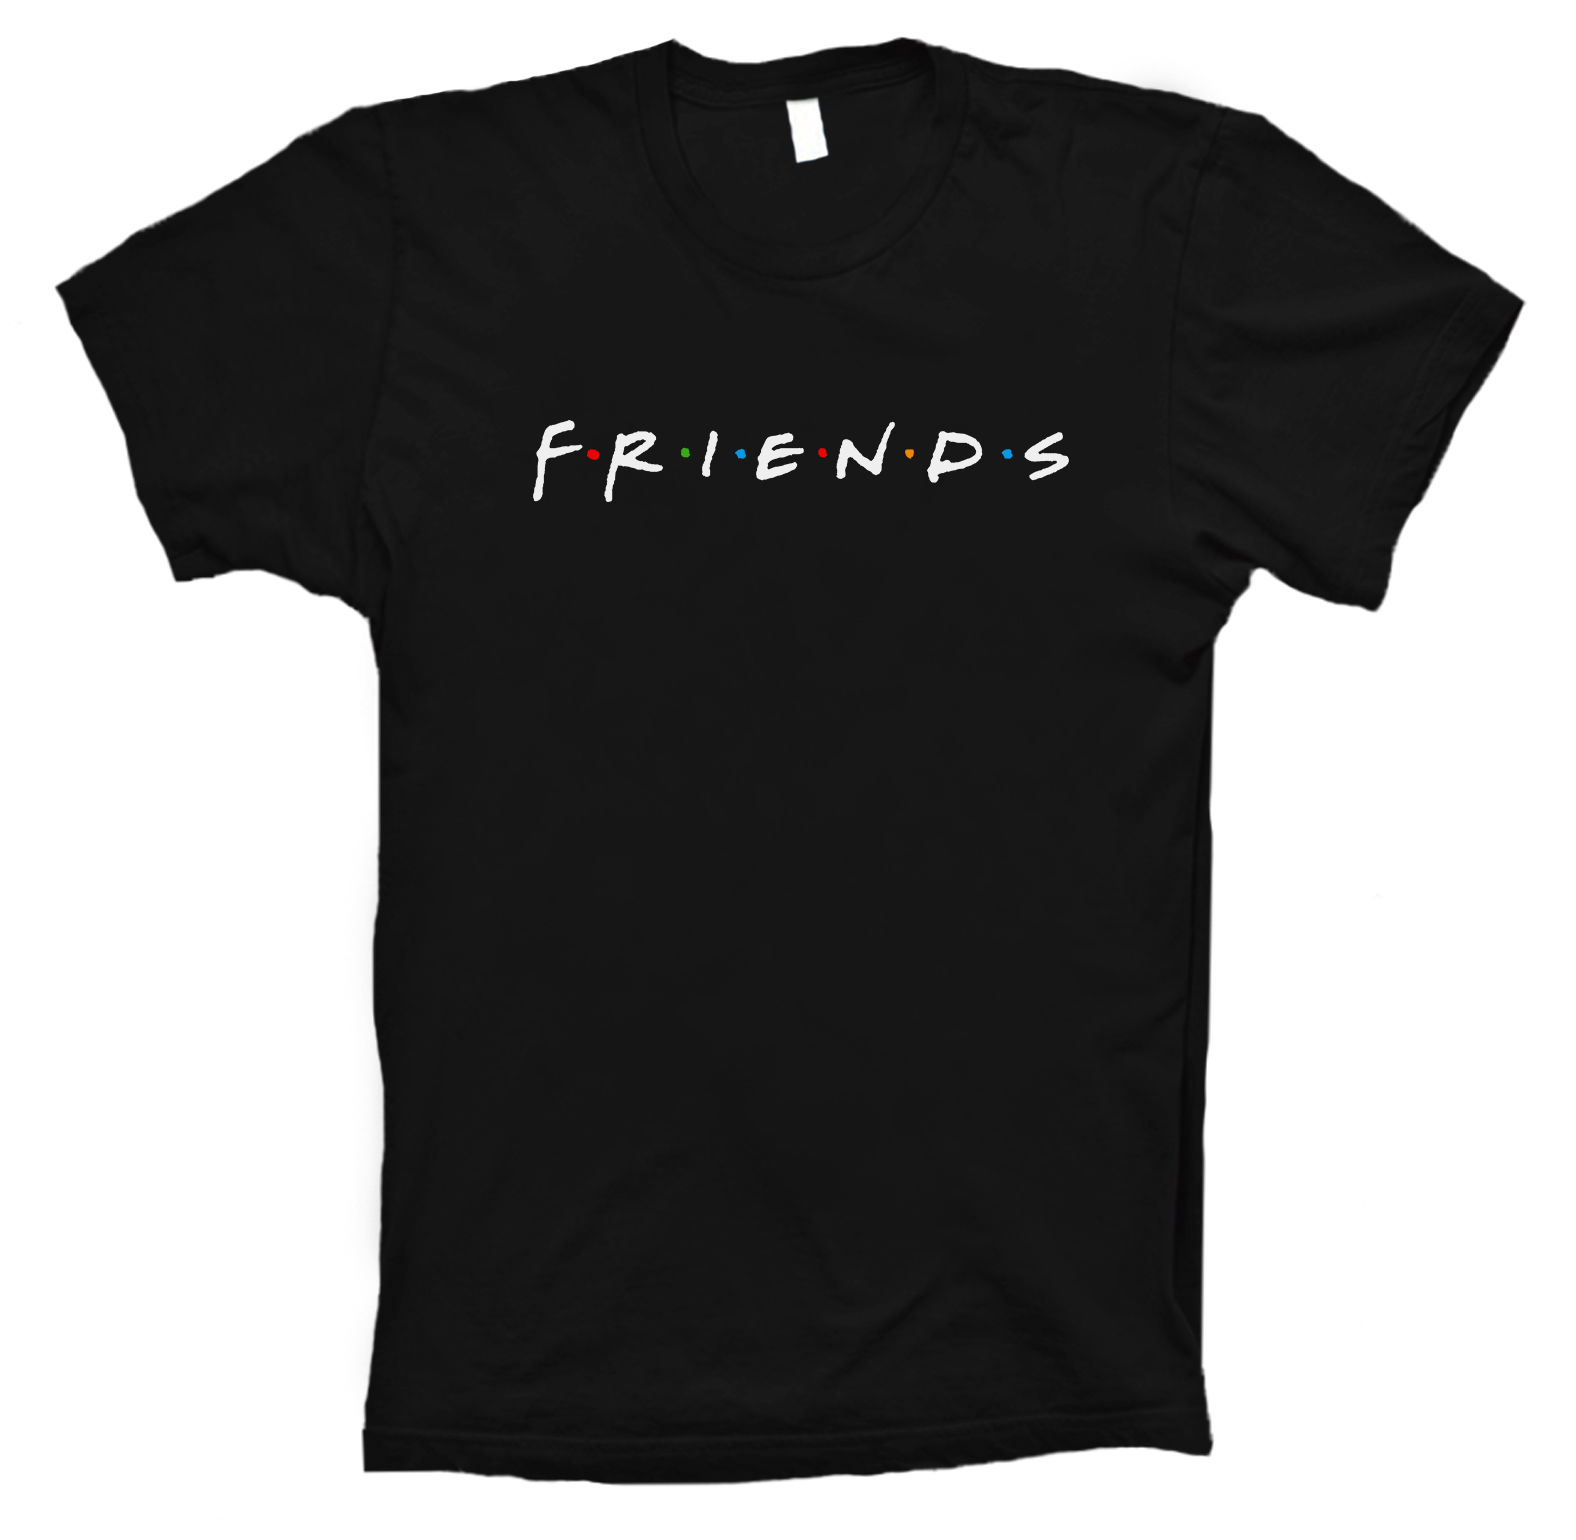 Friends T Shirt Inspired 90S Tv Show Sitcom New Sizes For Men And Women Tee New Fashion Men'S Short Sleeve Printing image